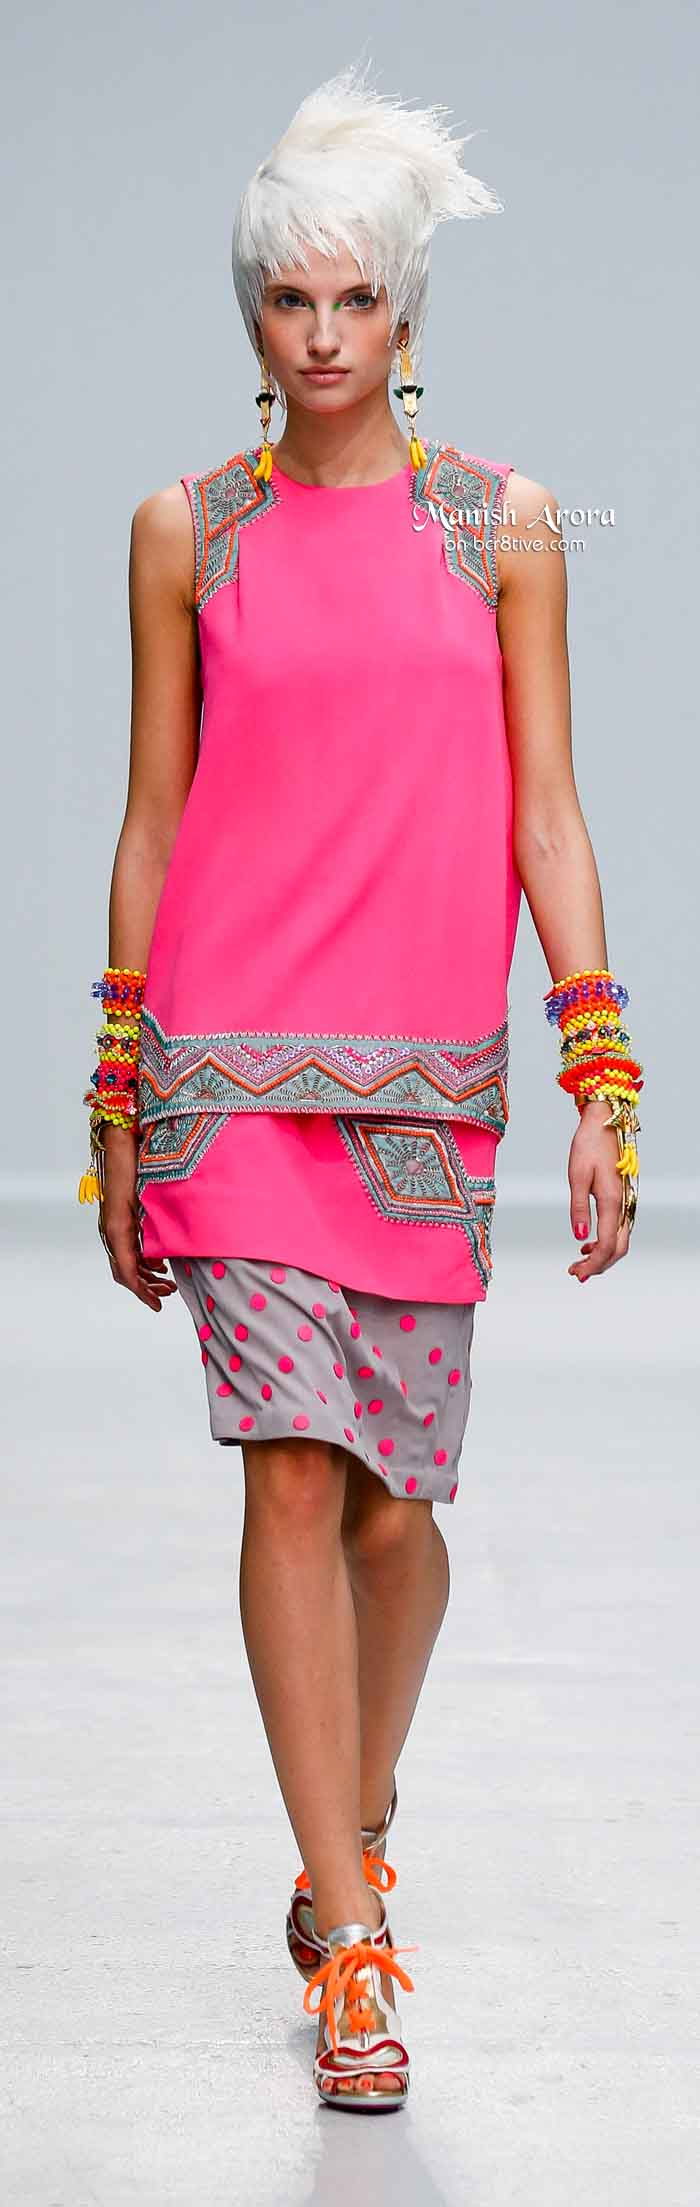 Manish Arora Spring Summer 2014